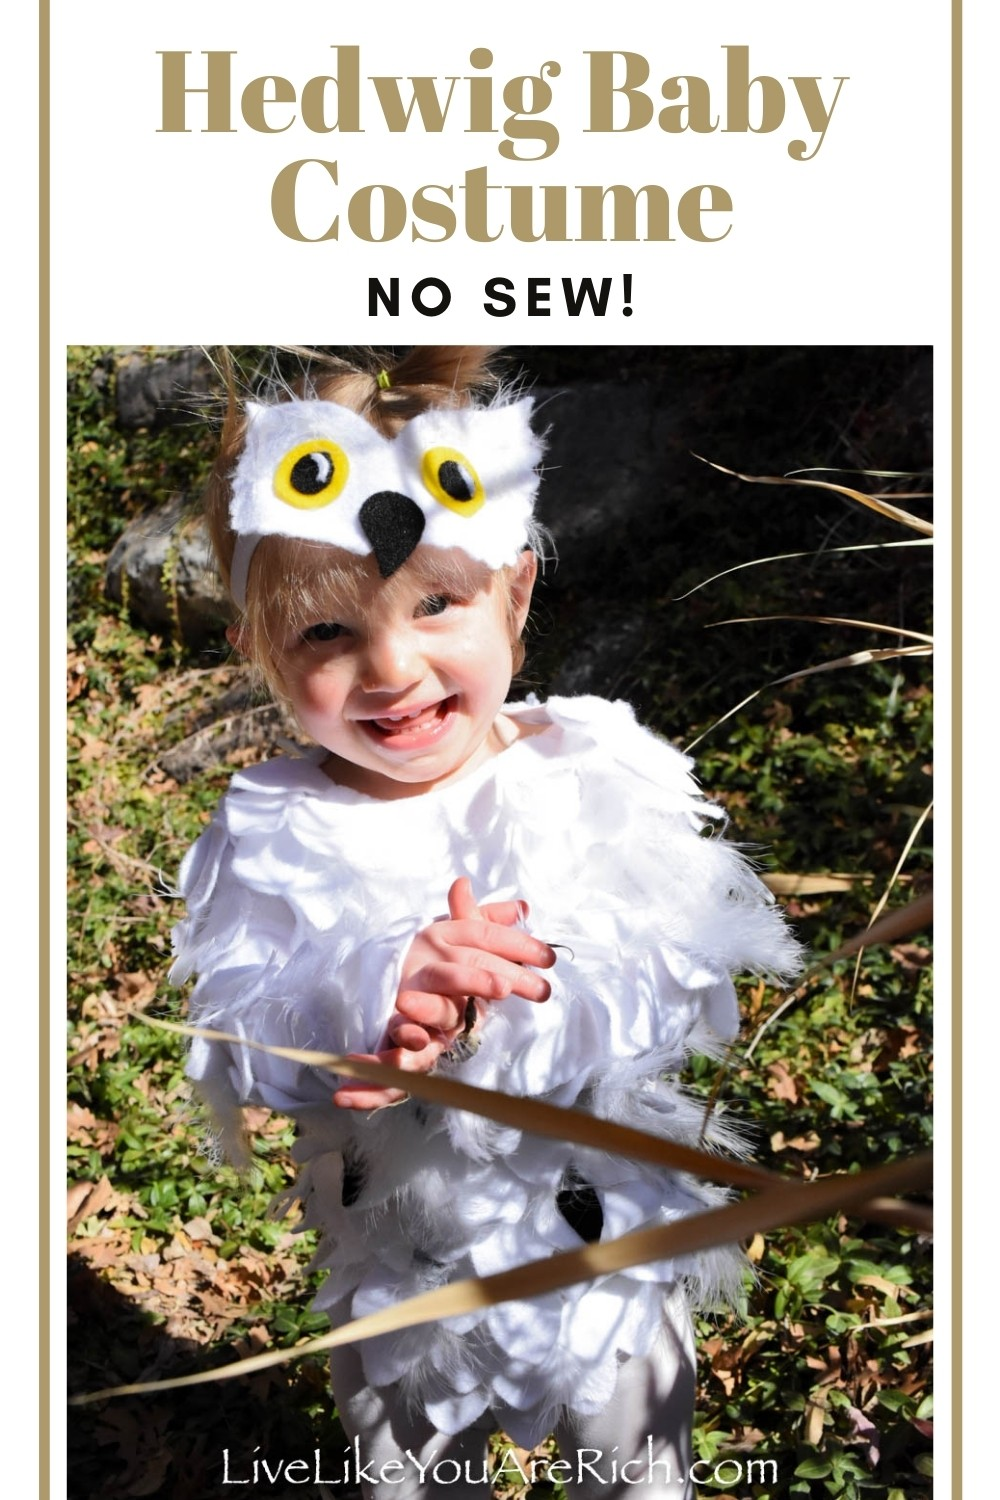 This is a great Hedwig no sew baby costume. It was easy, quick, inexpensive, and turned out very customized and cute. I also appreciated the fact that my baby didn't have to hold anything to wear it. The costume is similar to what she normally wears daily, so it felt natural and easy for her to walk around in. #halloweencostume #harrypotter #hedwigbabyowlcostume